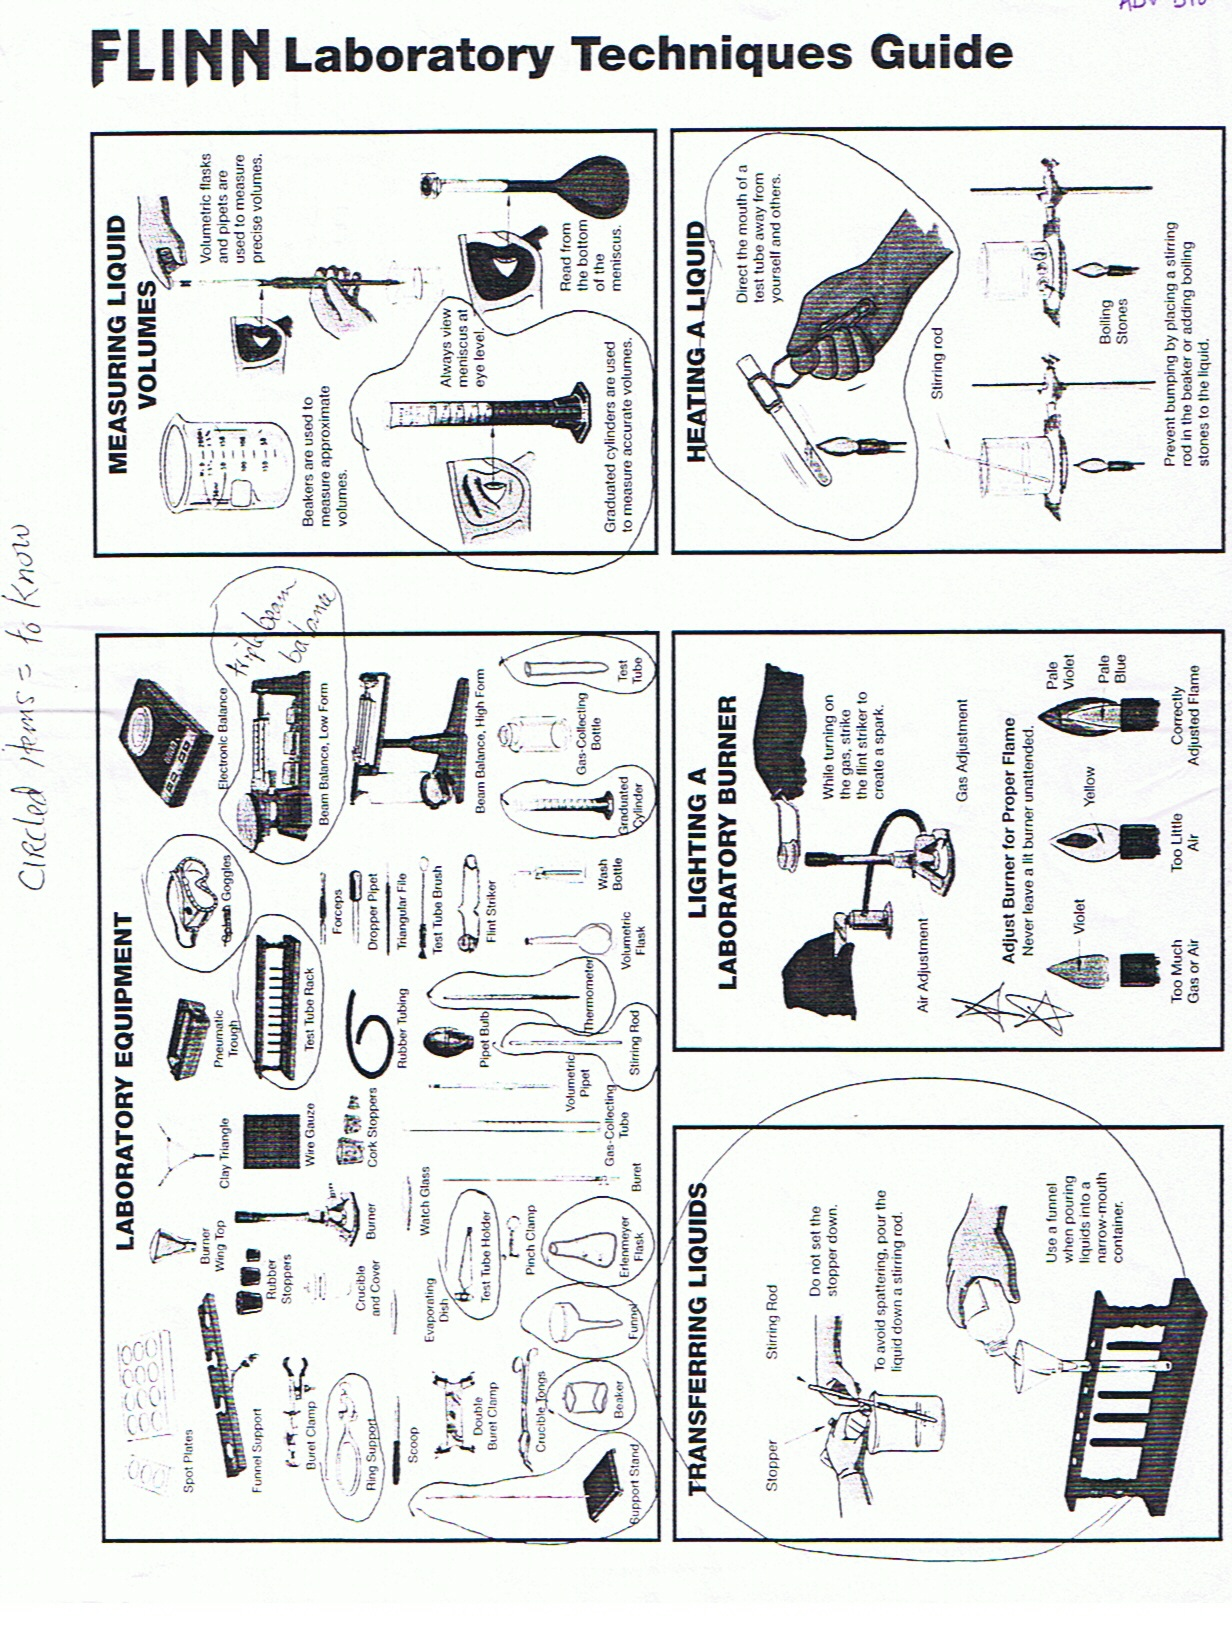 Lab Equipment Reference Sheet Download Here Images